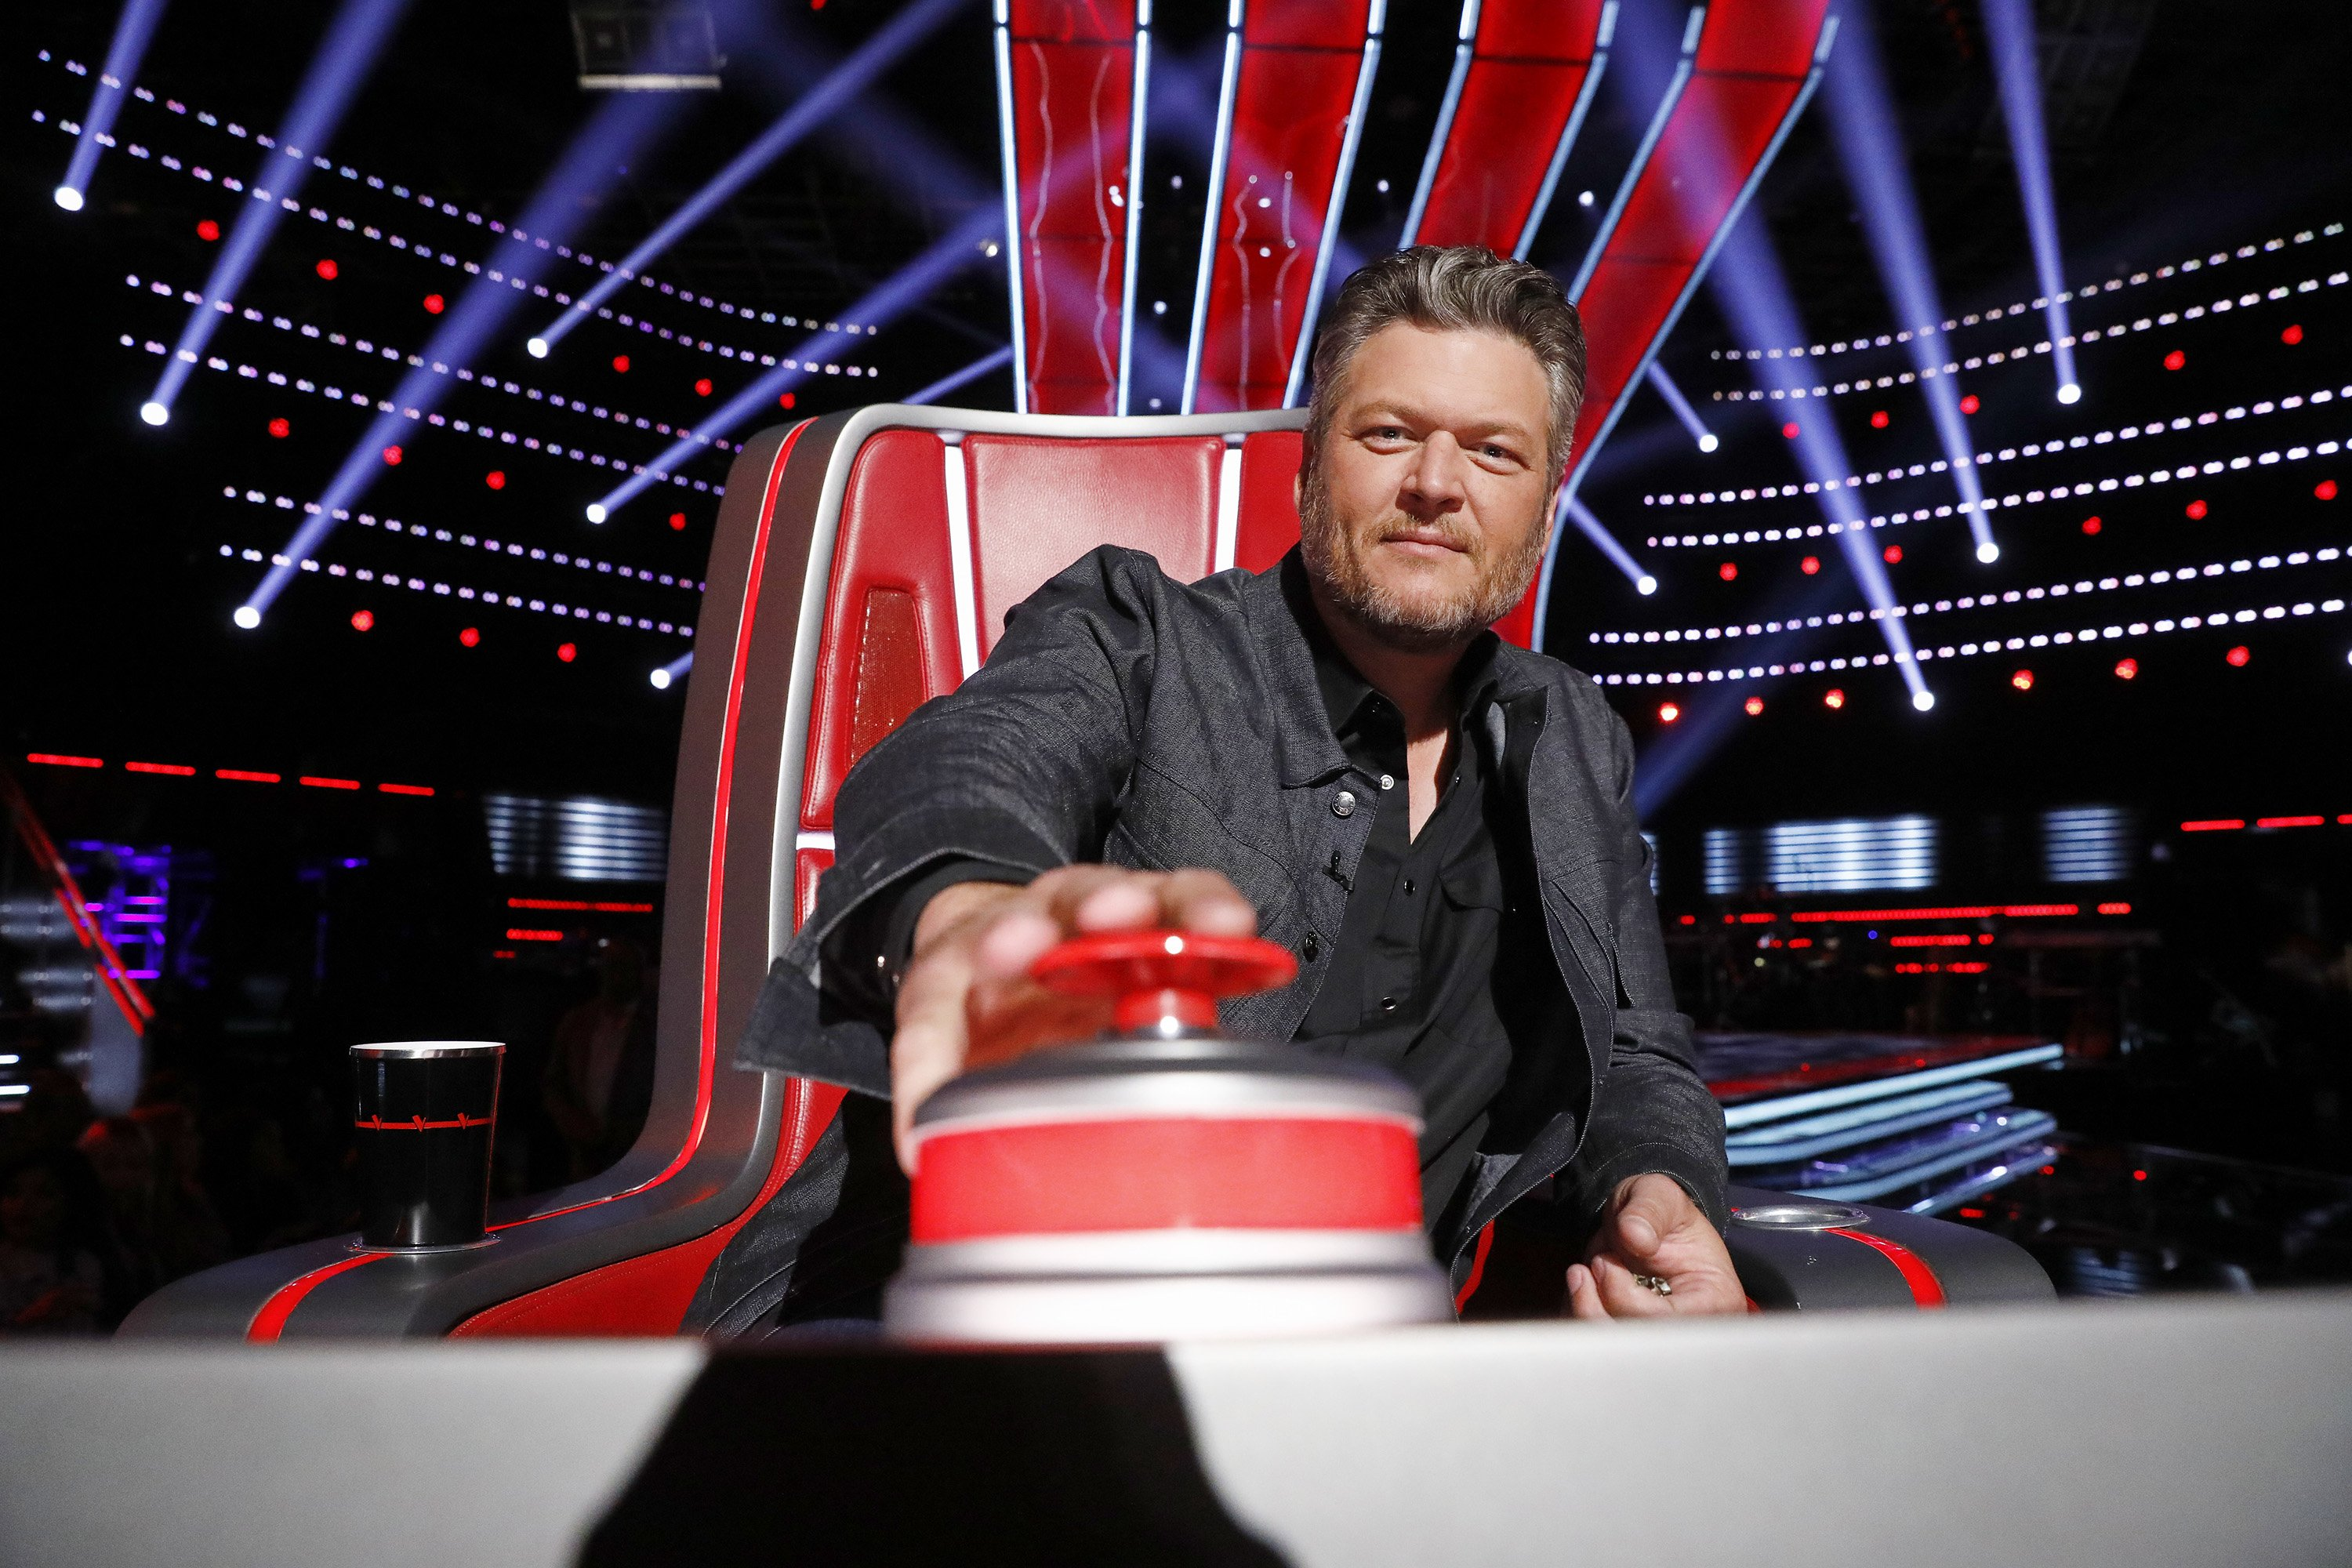 """Blake Shelton during the blind auditions of the 18th season of """"The Voice."""" 